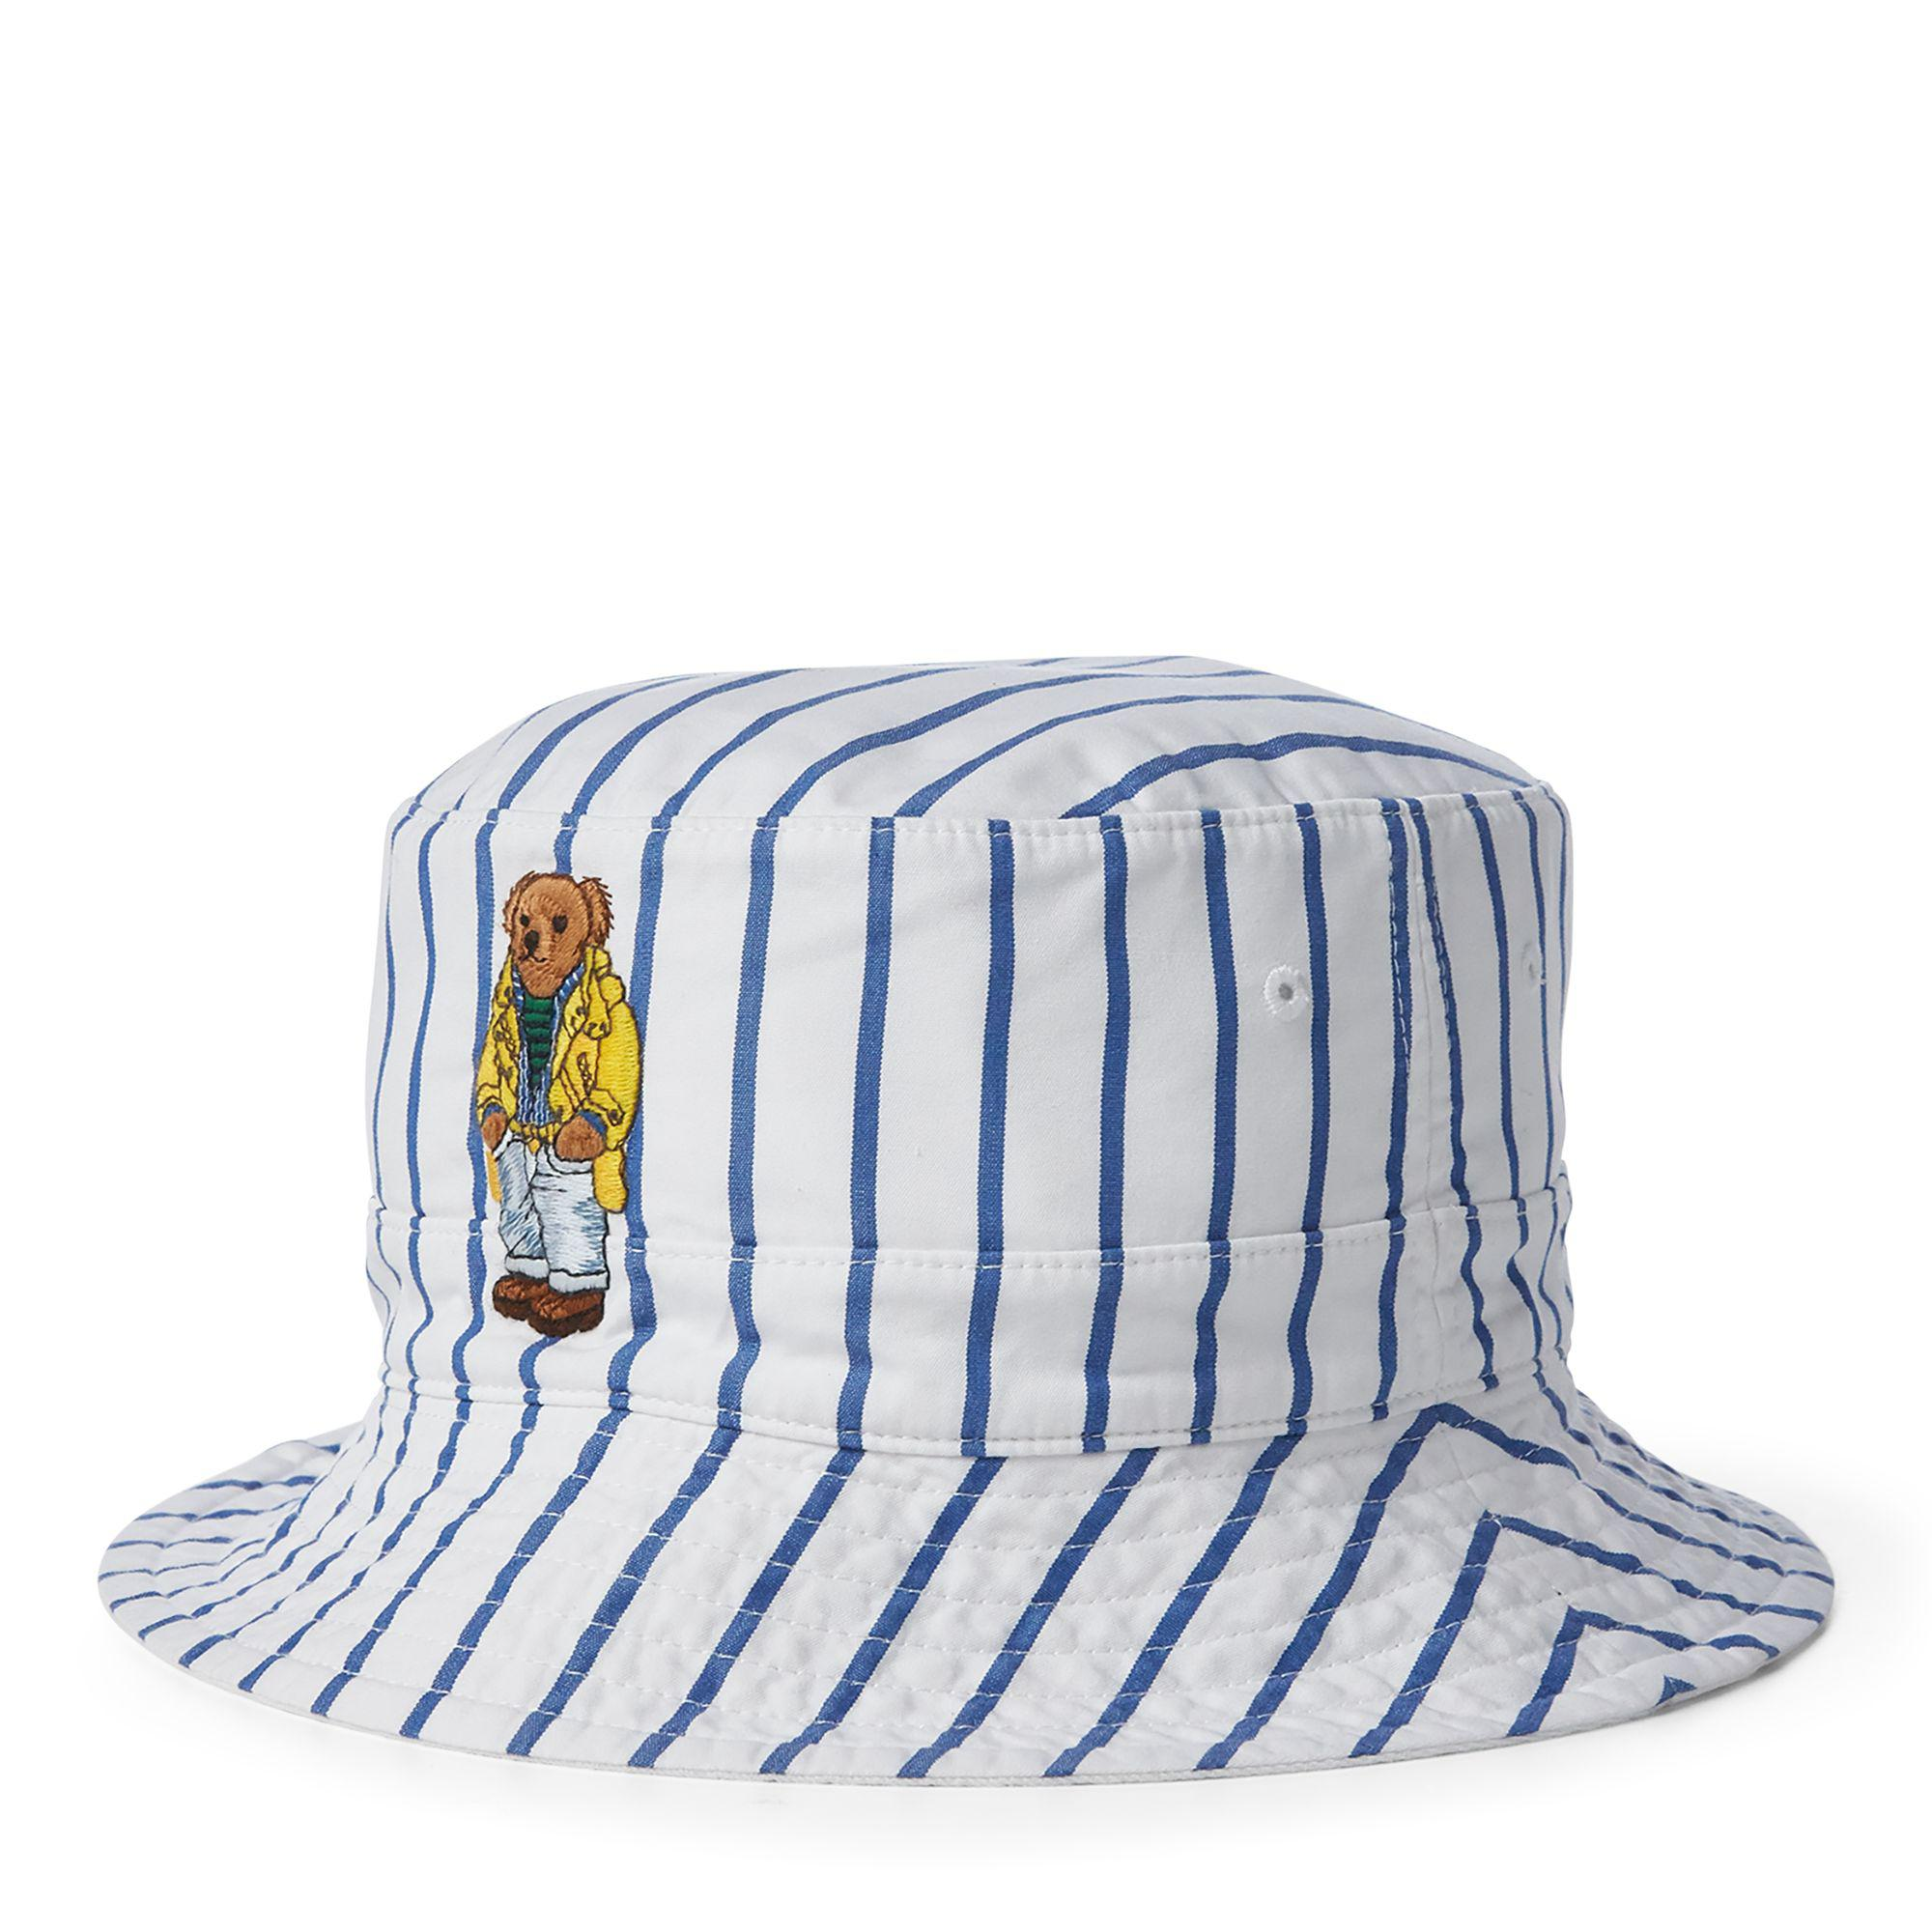 ac626f4290b73 Polo Ralph Lauren Reversible Crested Bucket Hat in Blue for Men - Lyst